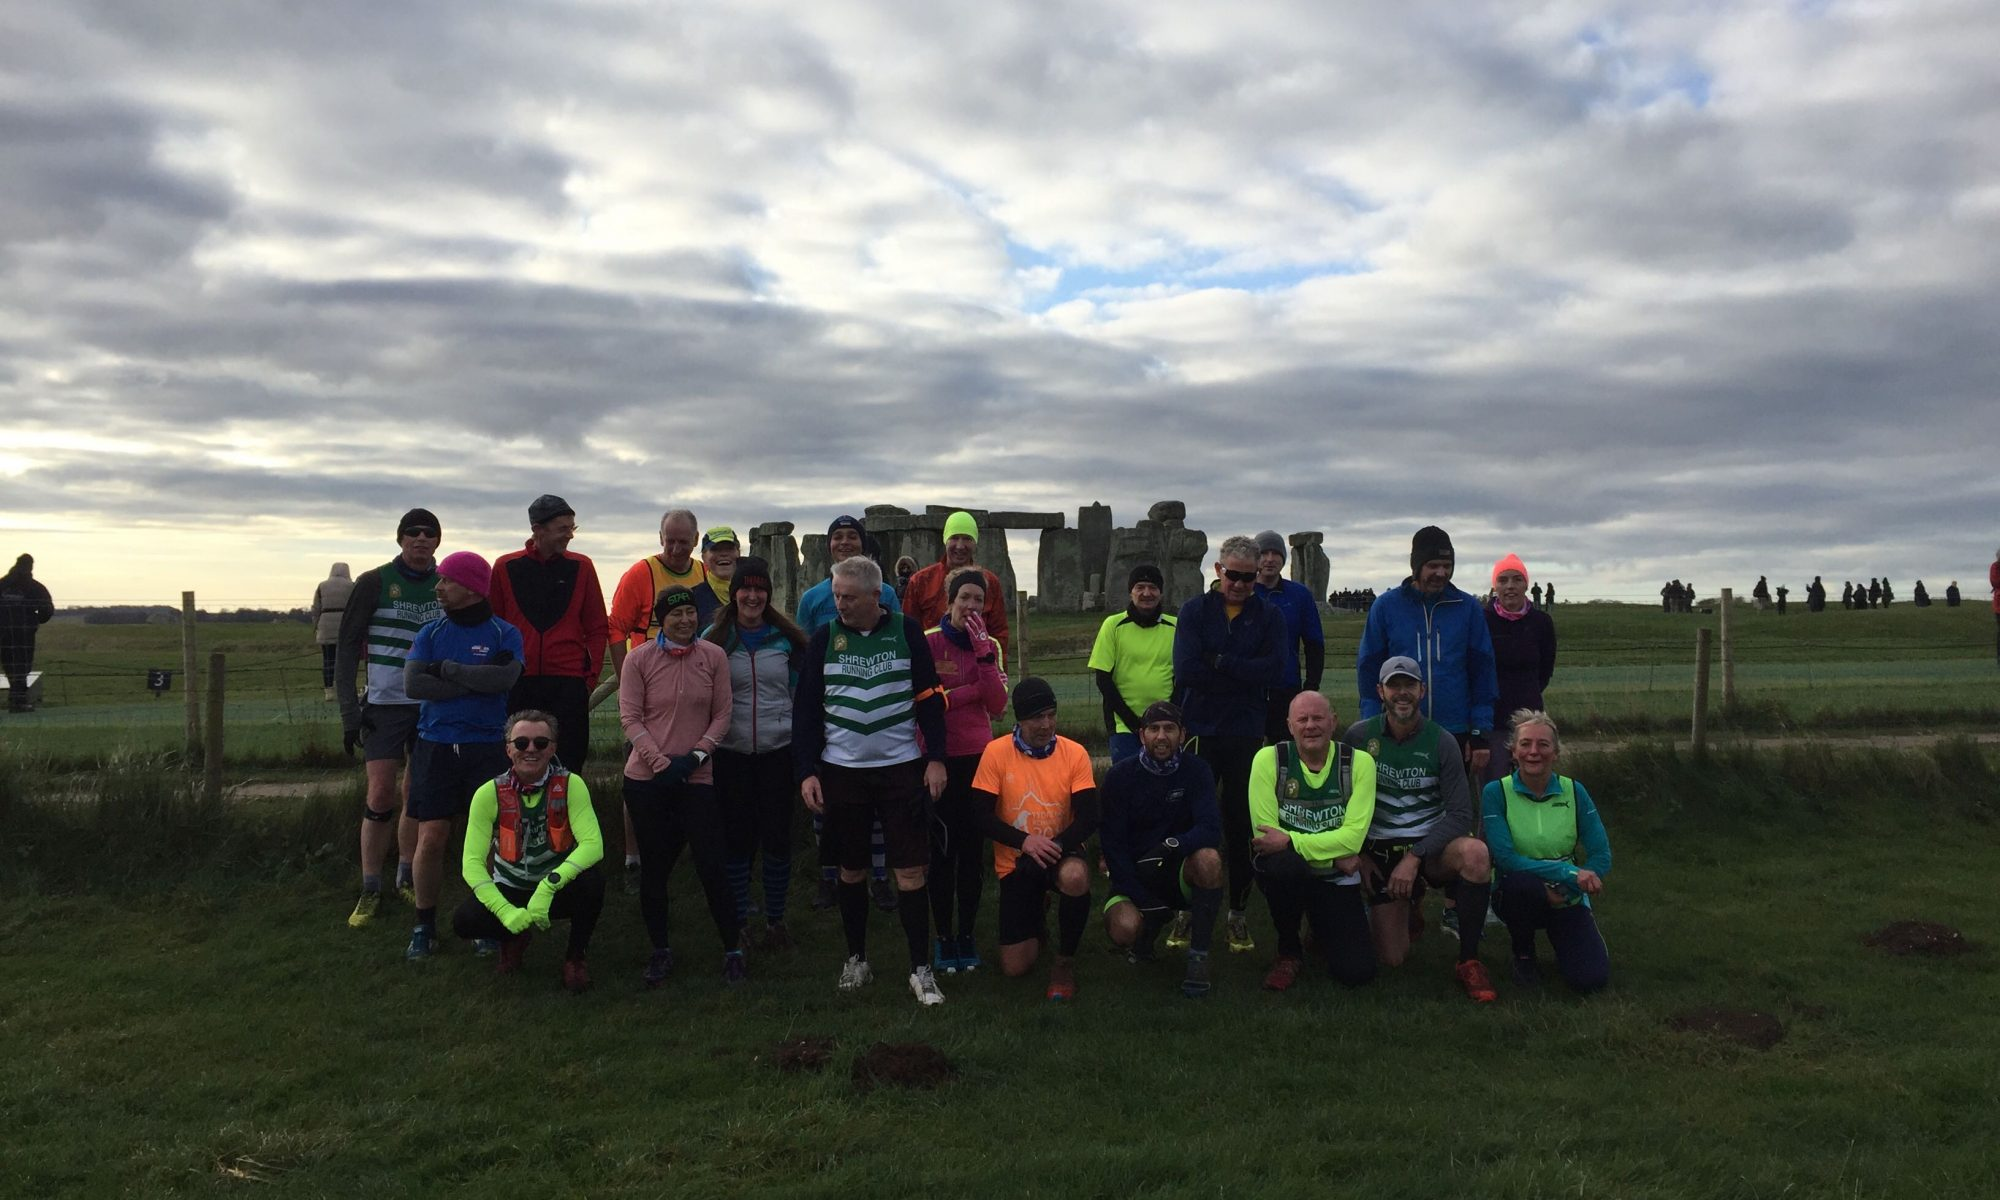 runners in front of stonehenge